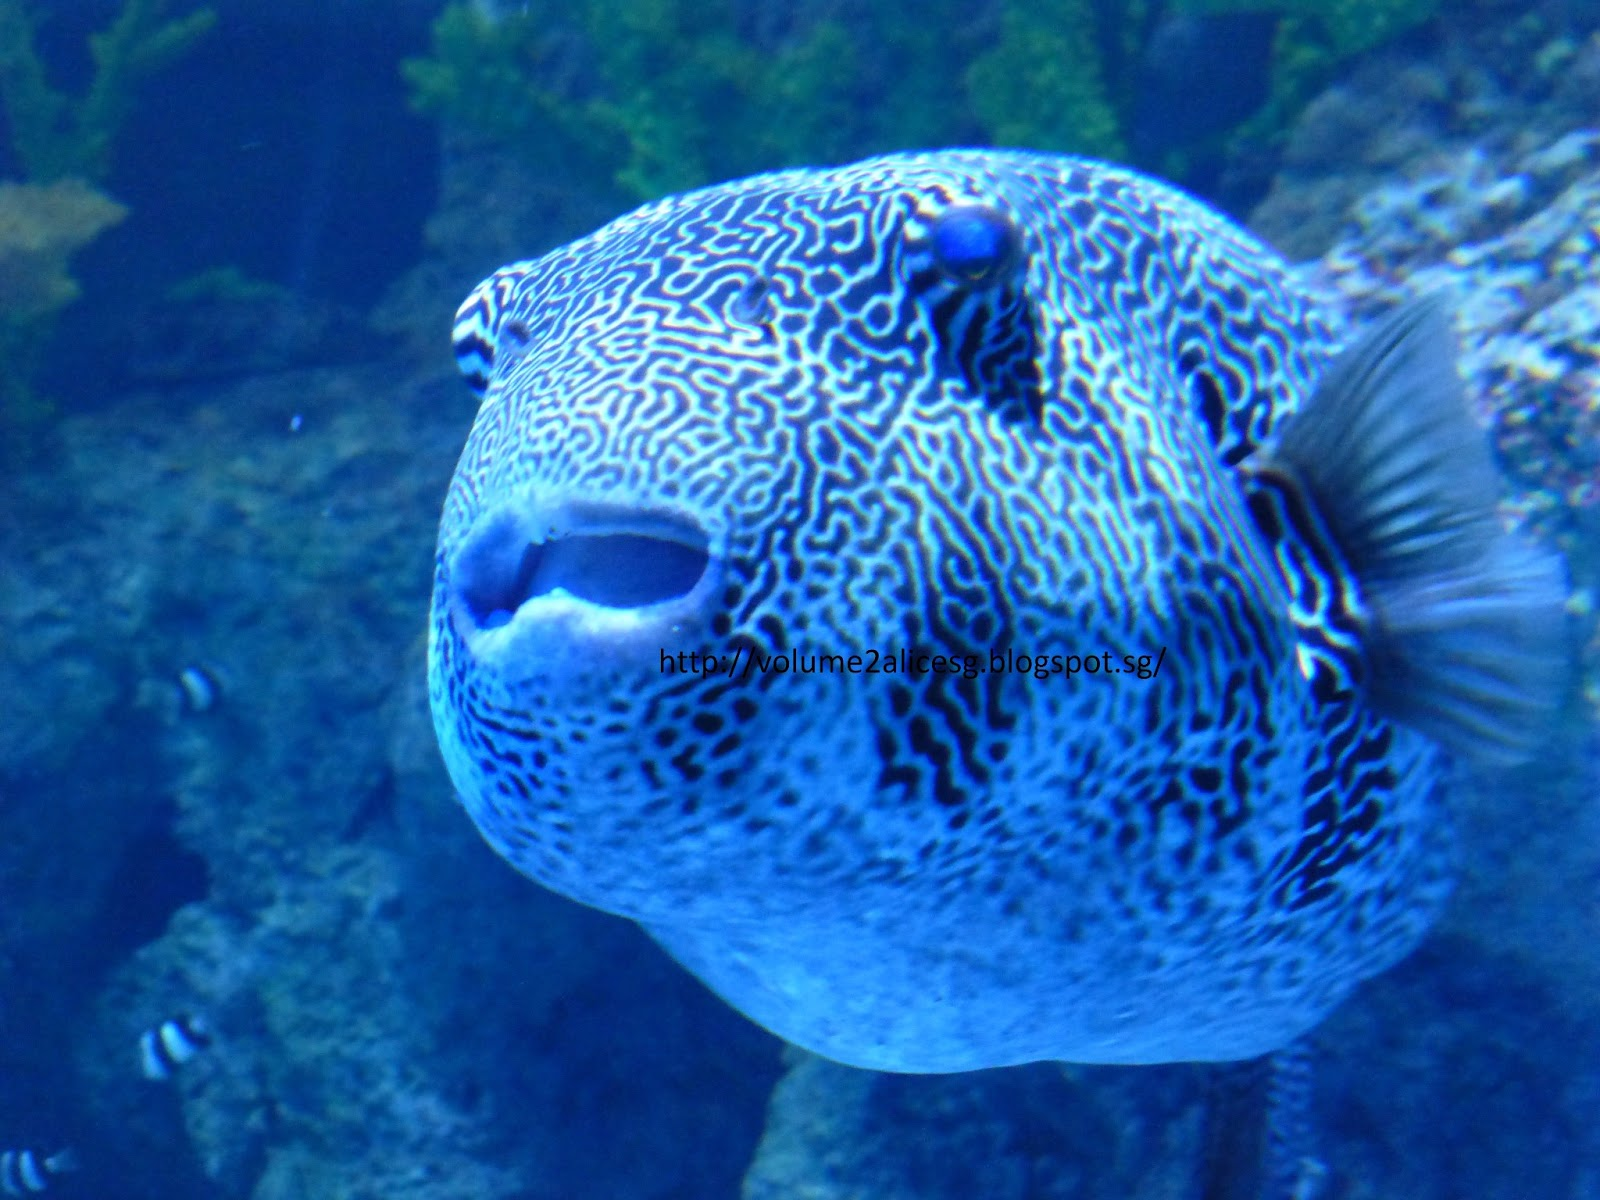 Fish in sea aquarium - There S So Much To View And So Many Different Species Of The Fishes That Many I Am So Alien With If Not Mistaken The Below Fish Is The Long Horn Cowfish